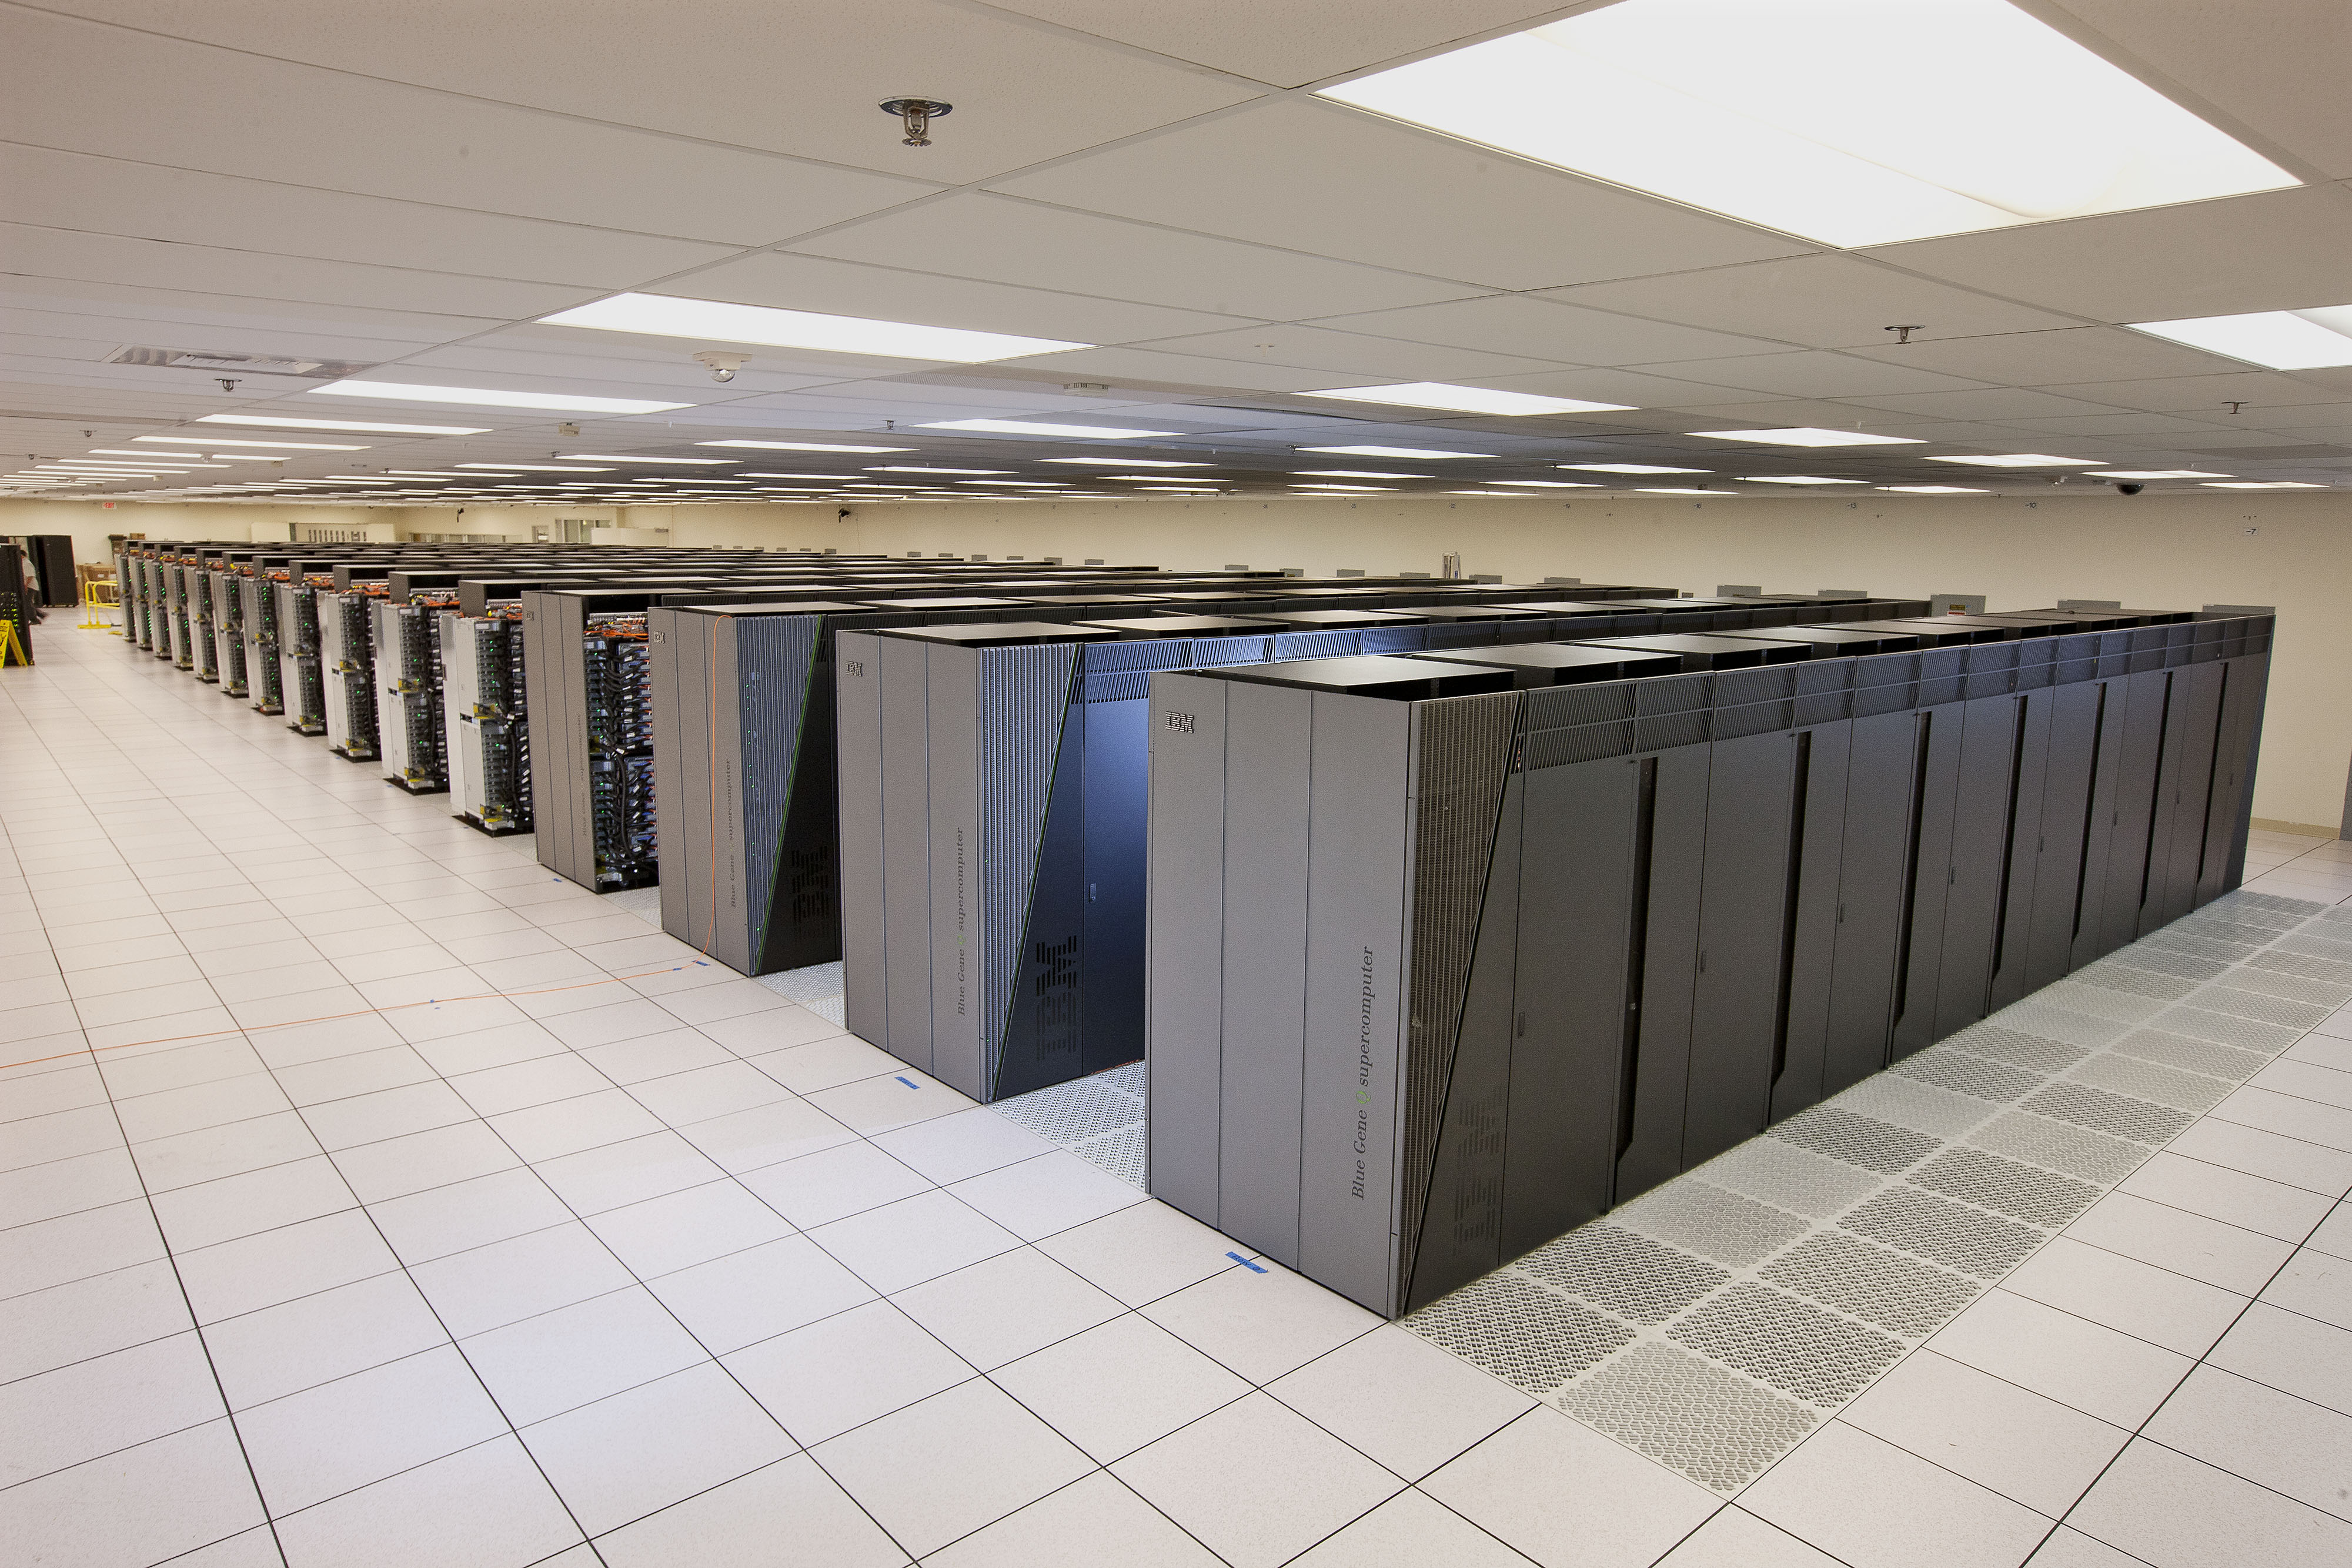 Sequoia supercomputer at Lawrence Livermore National Laboratory